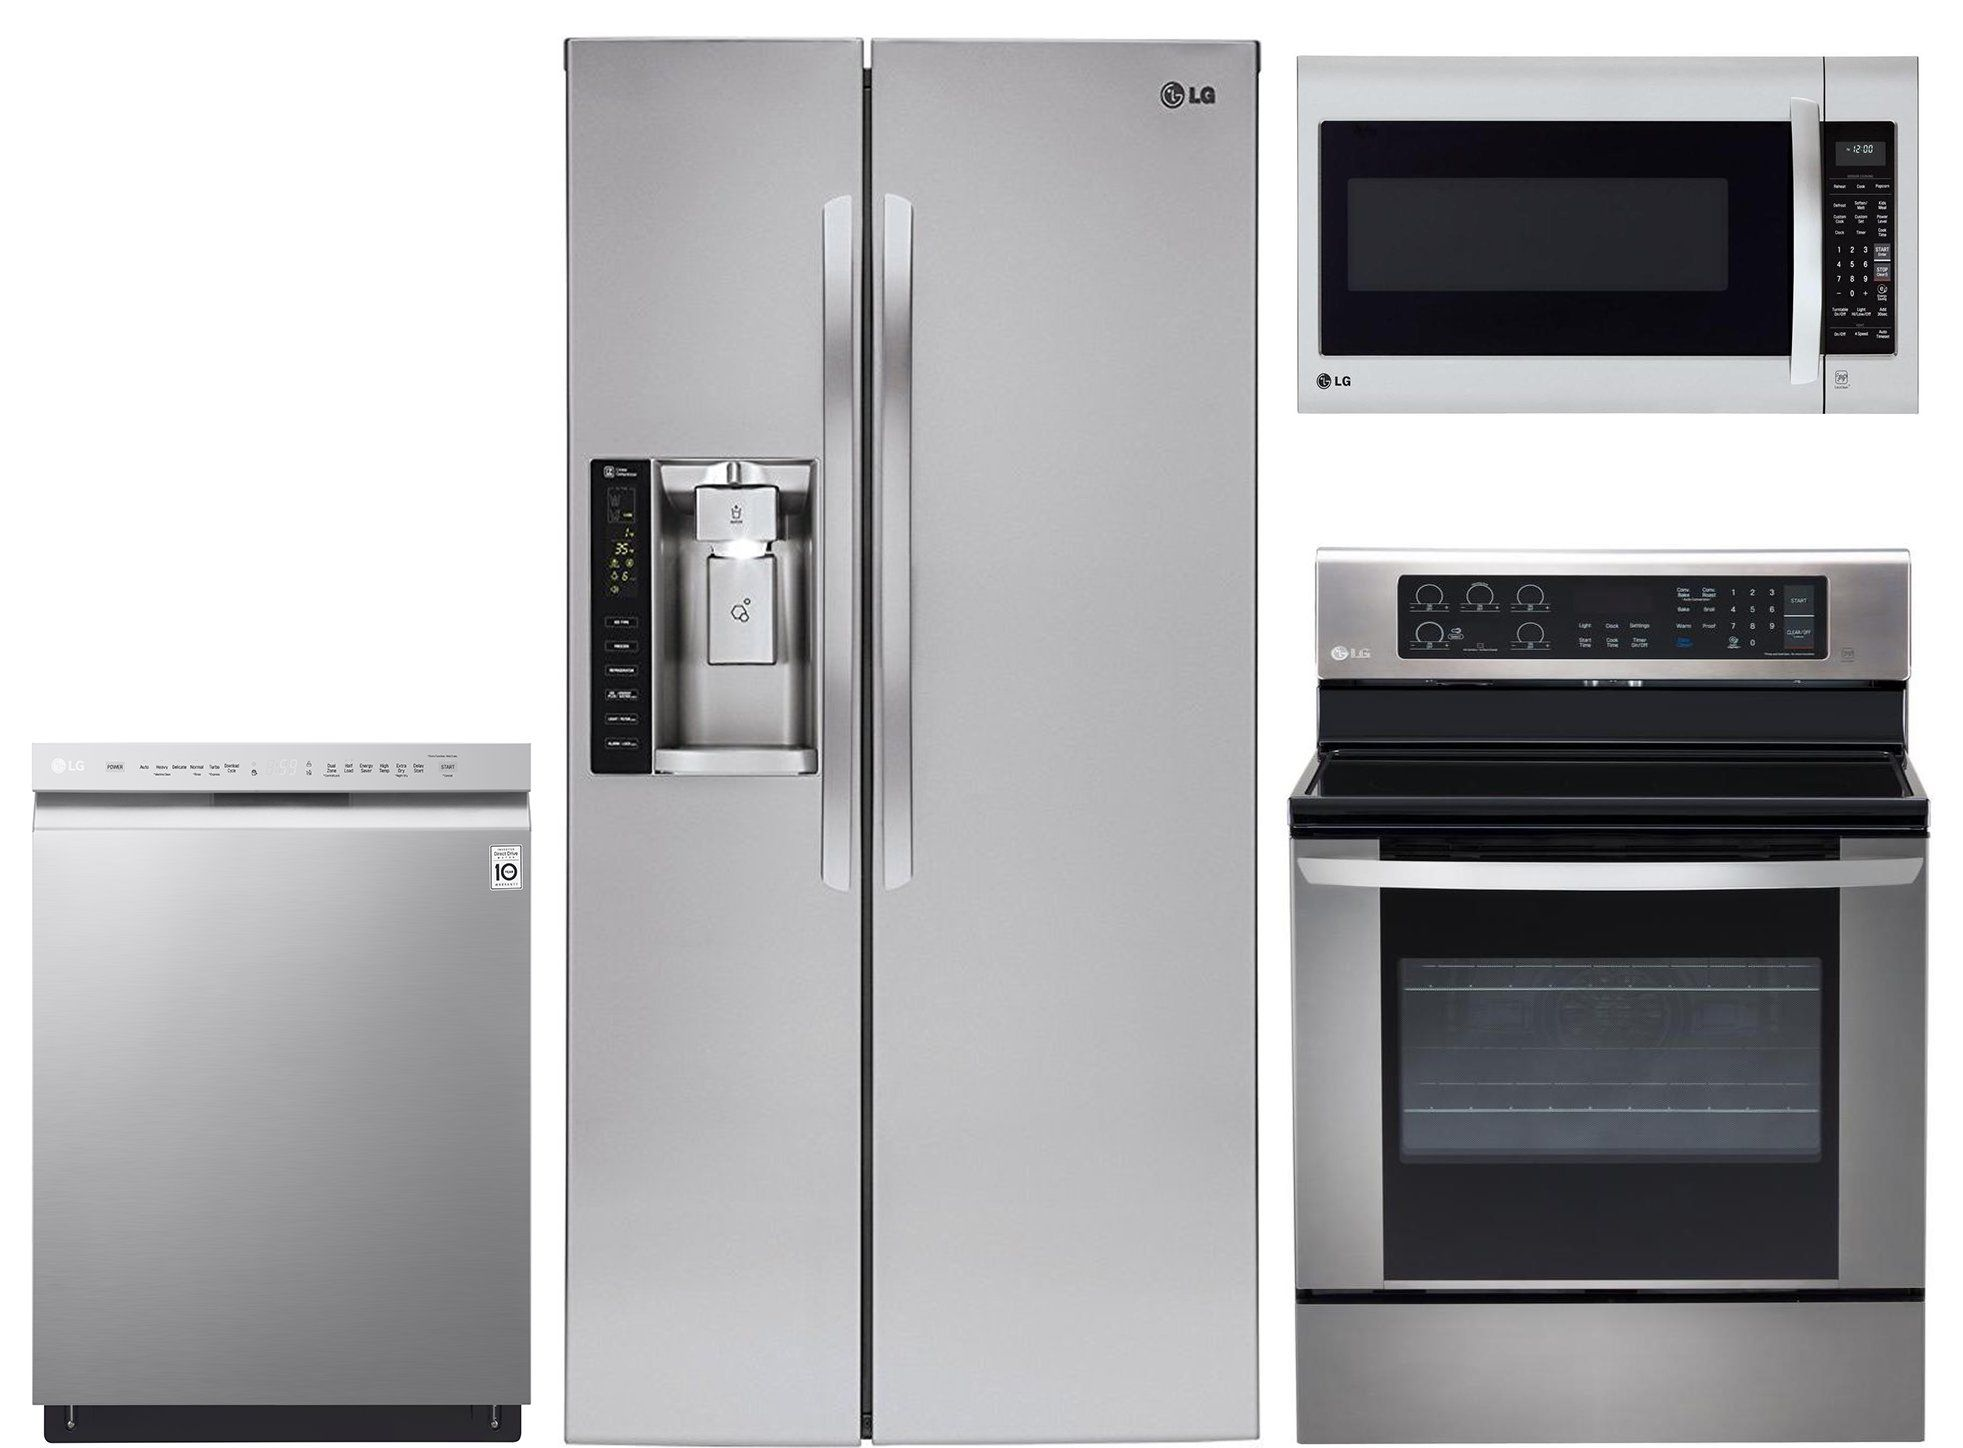 Lg 4 Piece Electric Kitchen Appliance Package With 26 2 Cu Ft Refrigerator Stainless Steel In 2020 Kitchen Appliance Packages Kitchen Appliances Appliance Packages